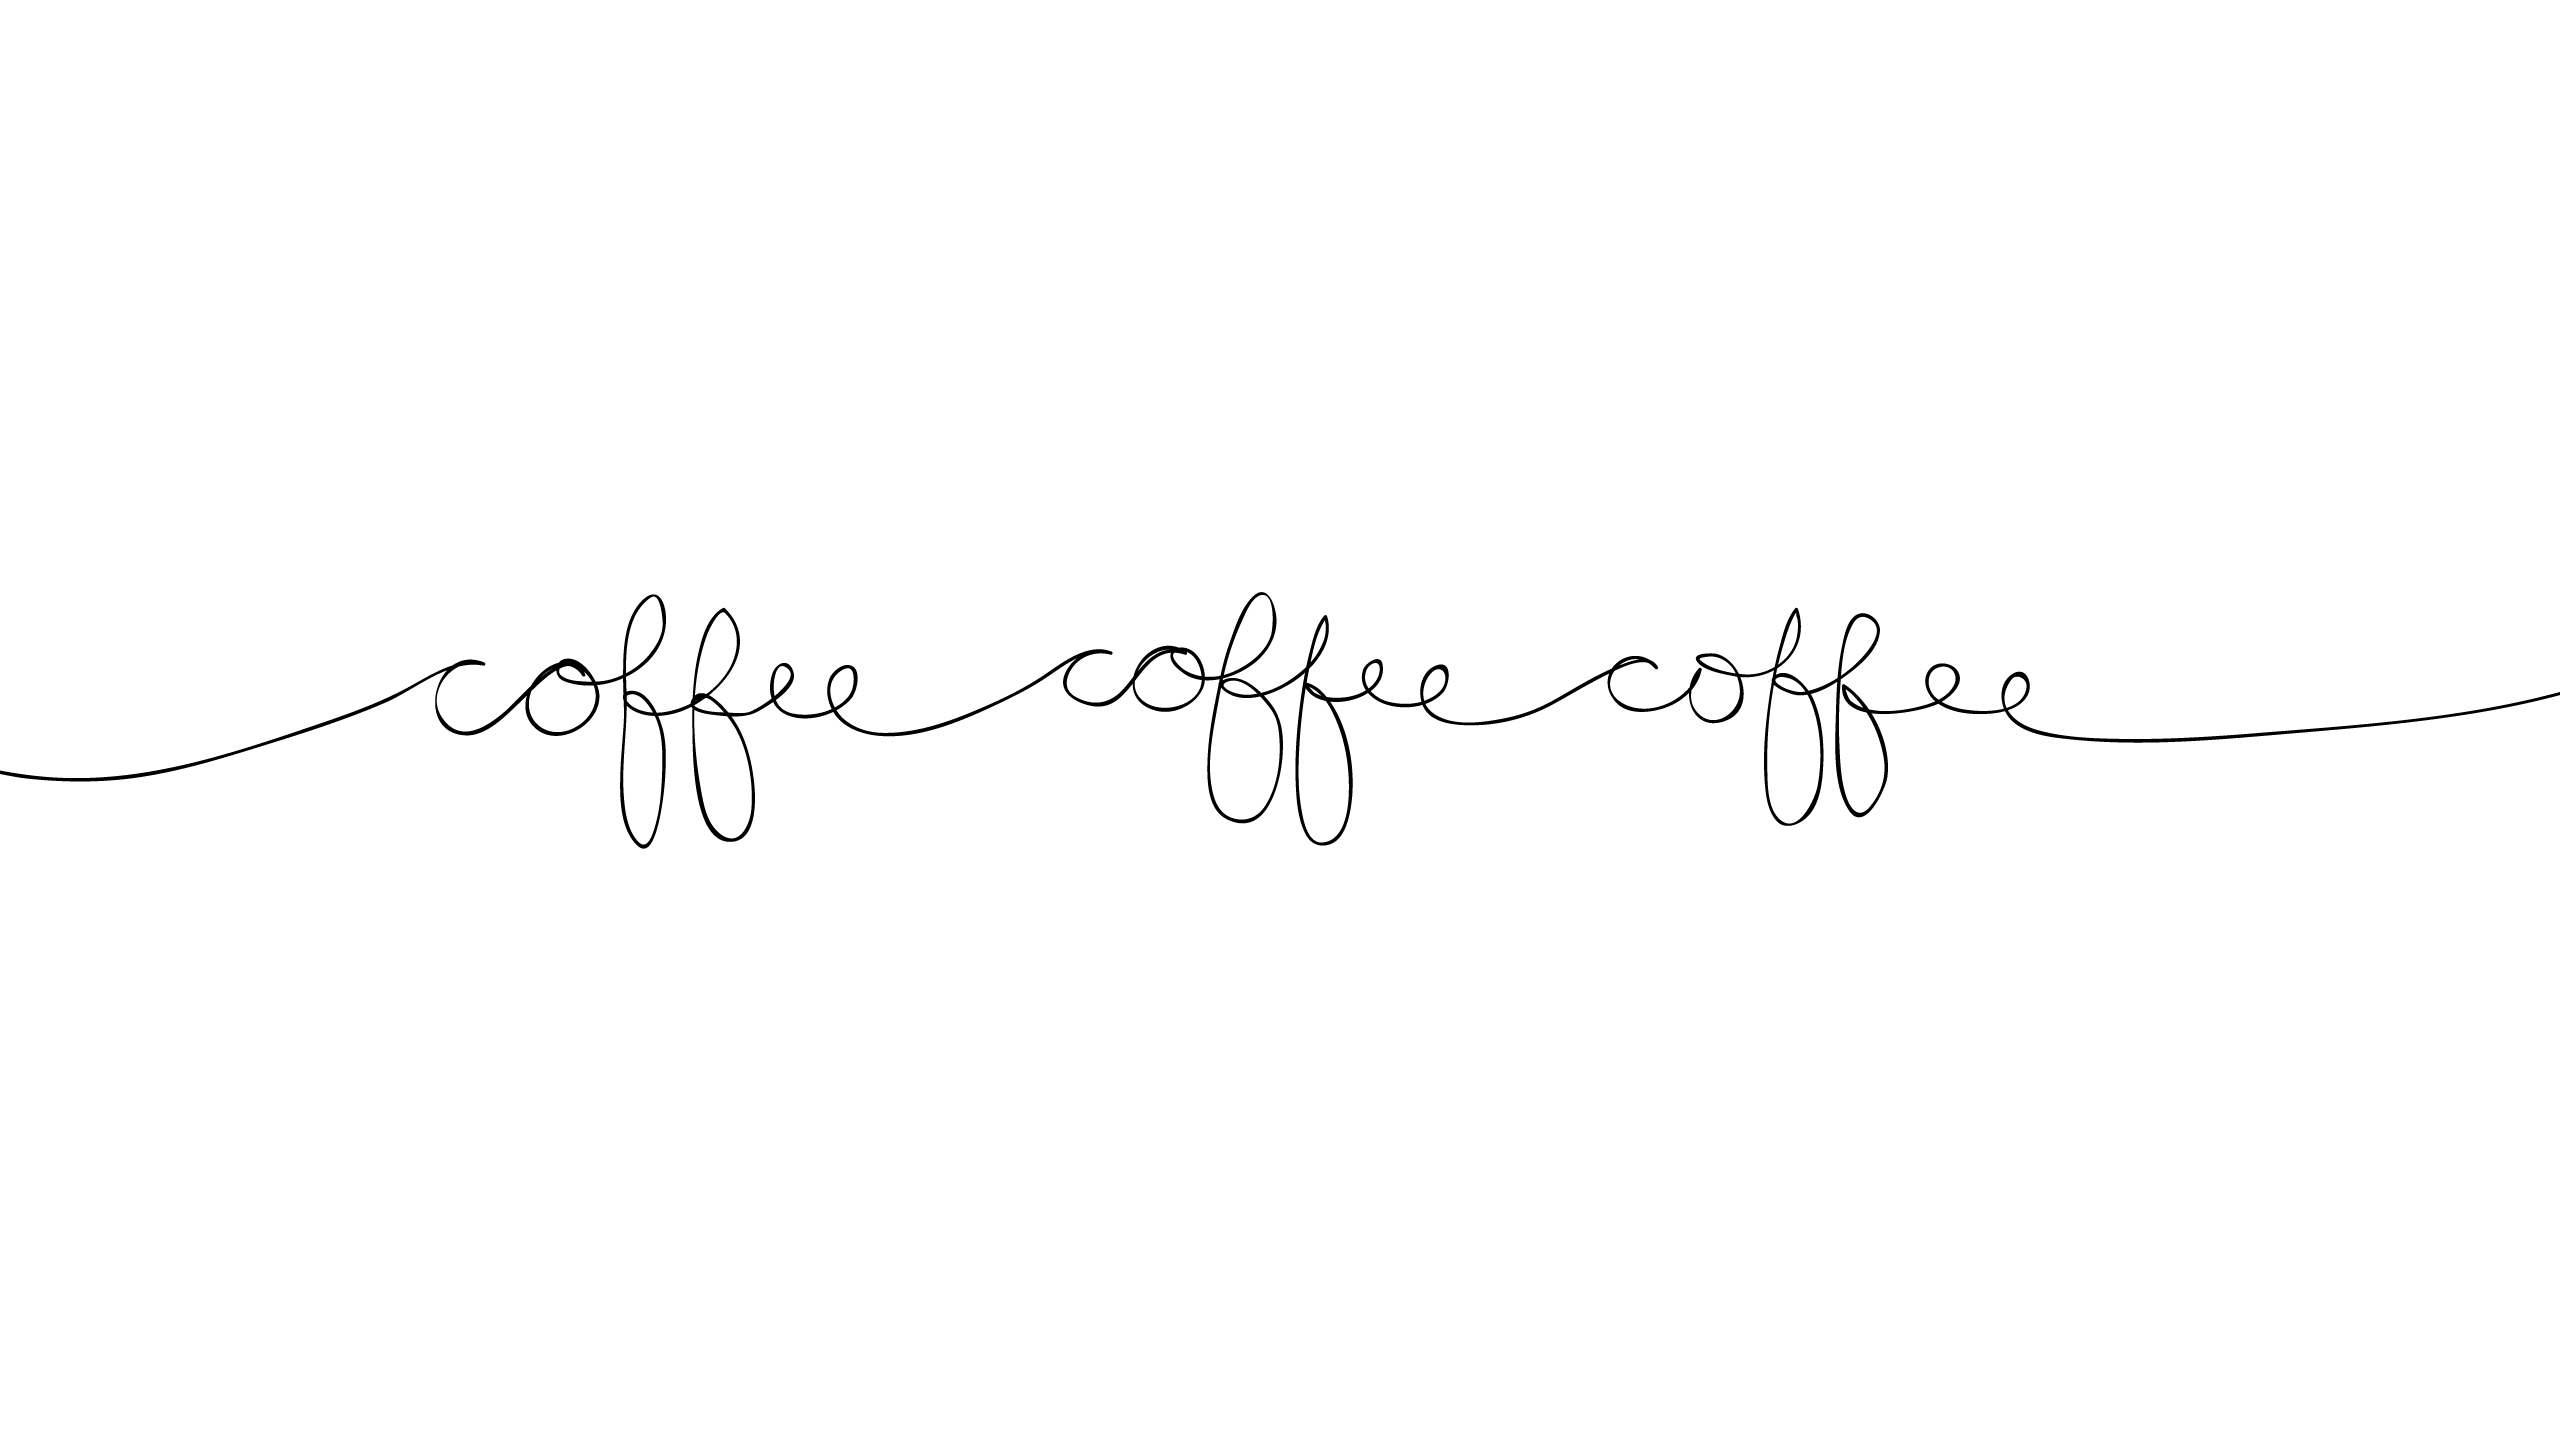 Coffee Minimalist Desktop Wallpaper Black 8927 2 560 1 440